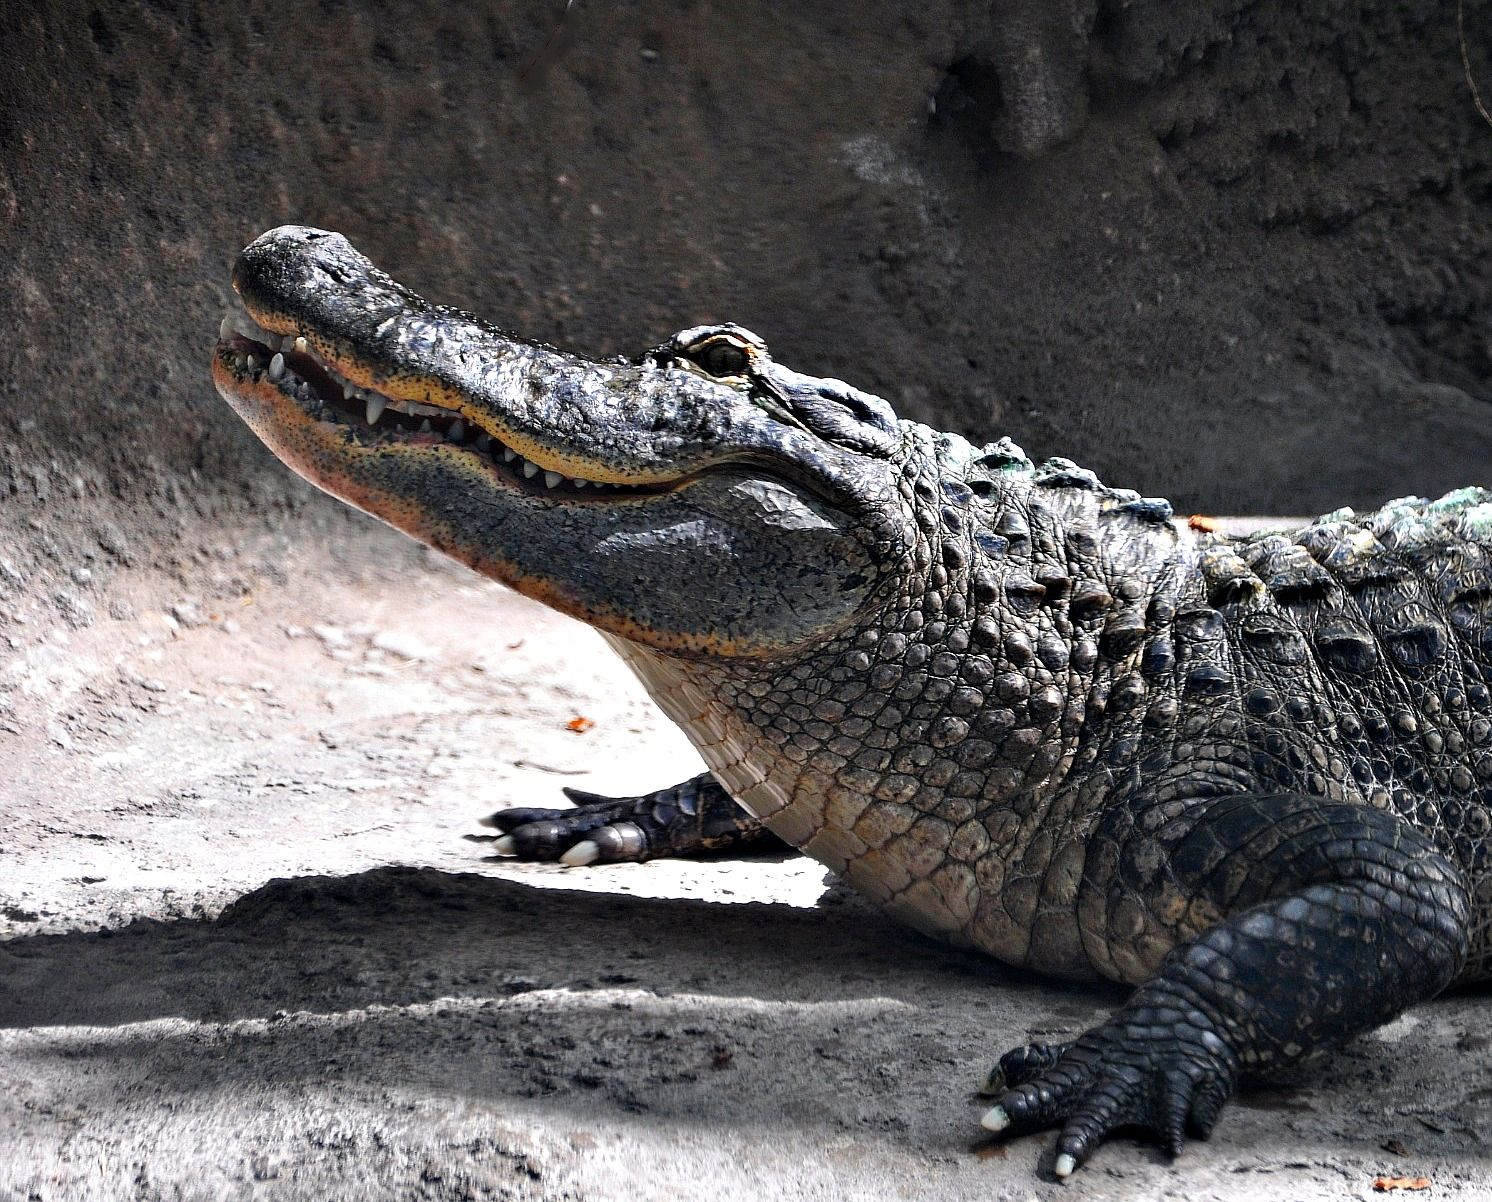 One of our 4 American alligators on exhibit.